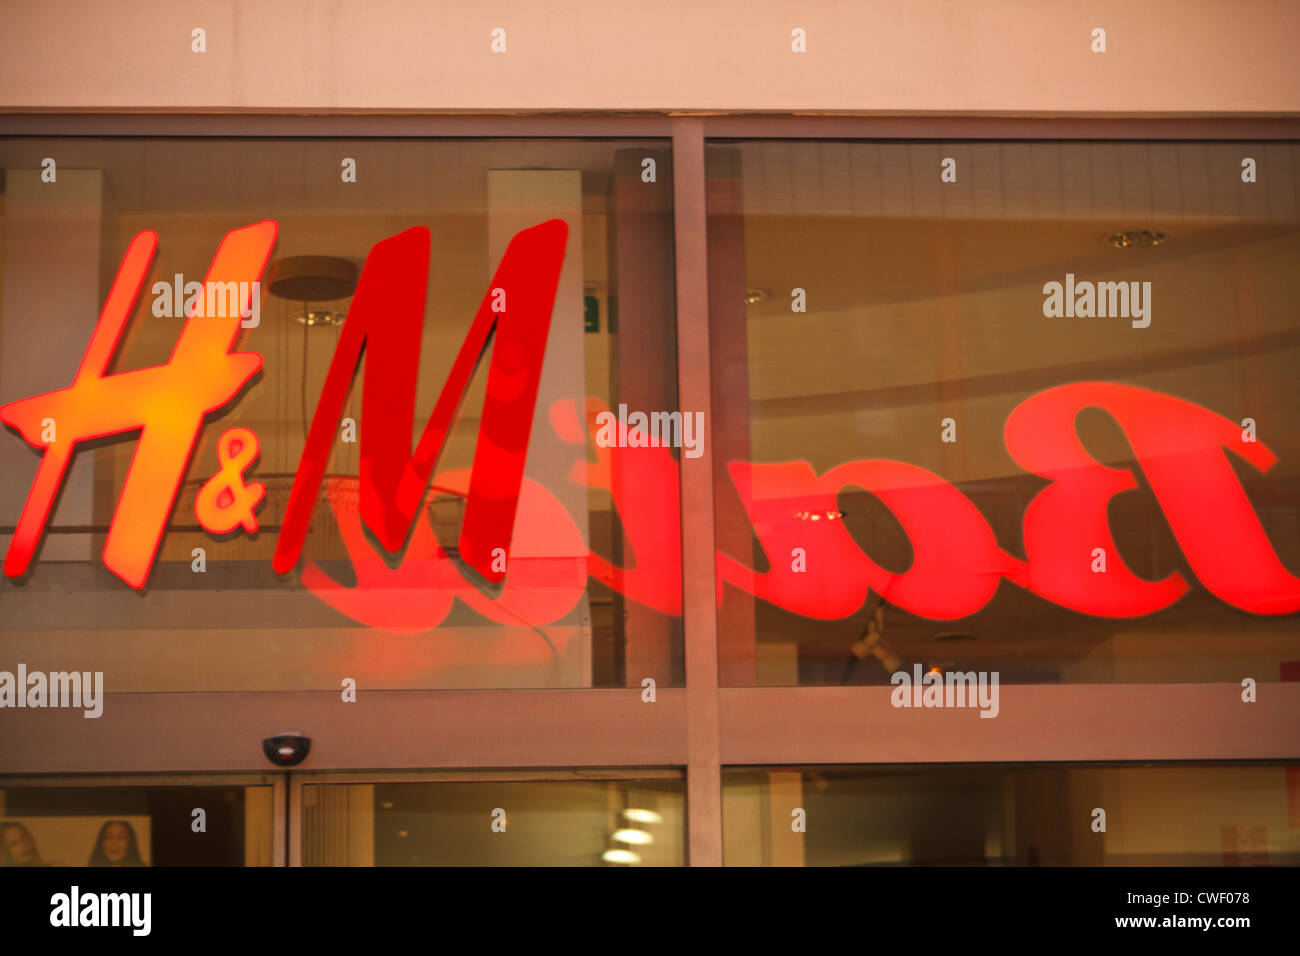 H&M and Bata logo on shop front in Brno, Czech Republic. - Stock Image